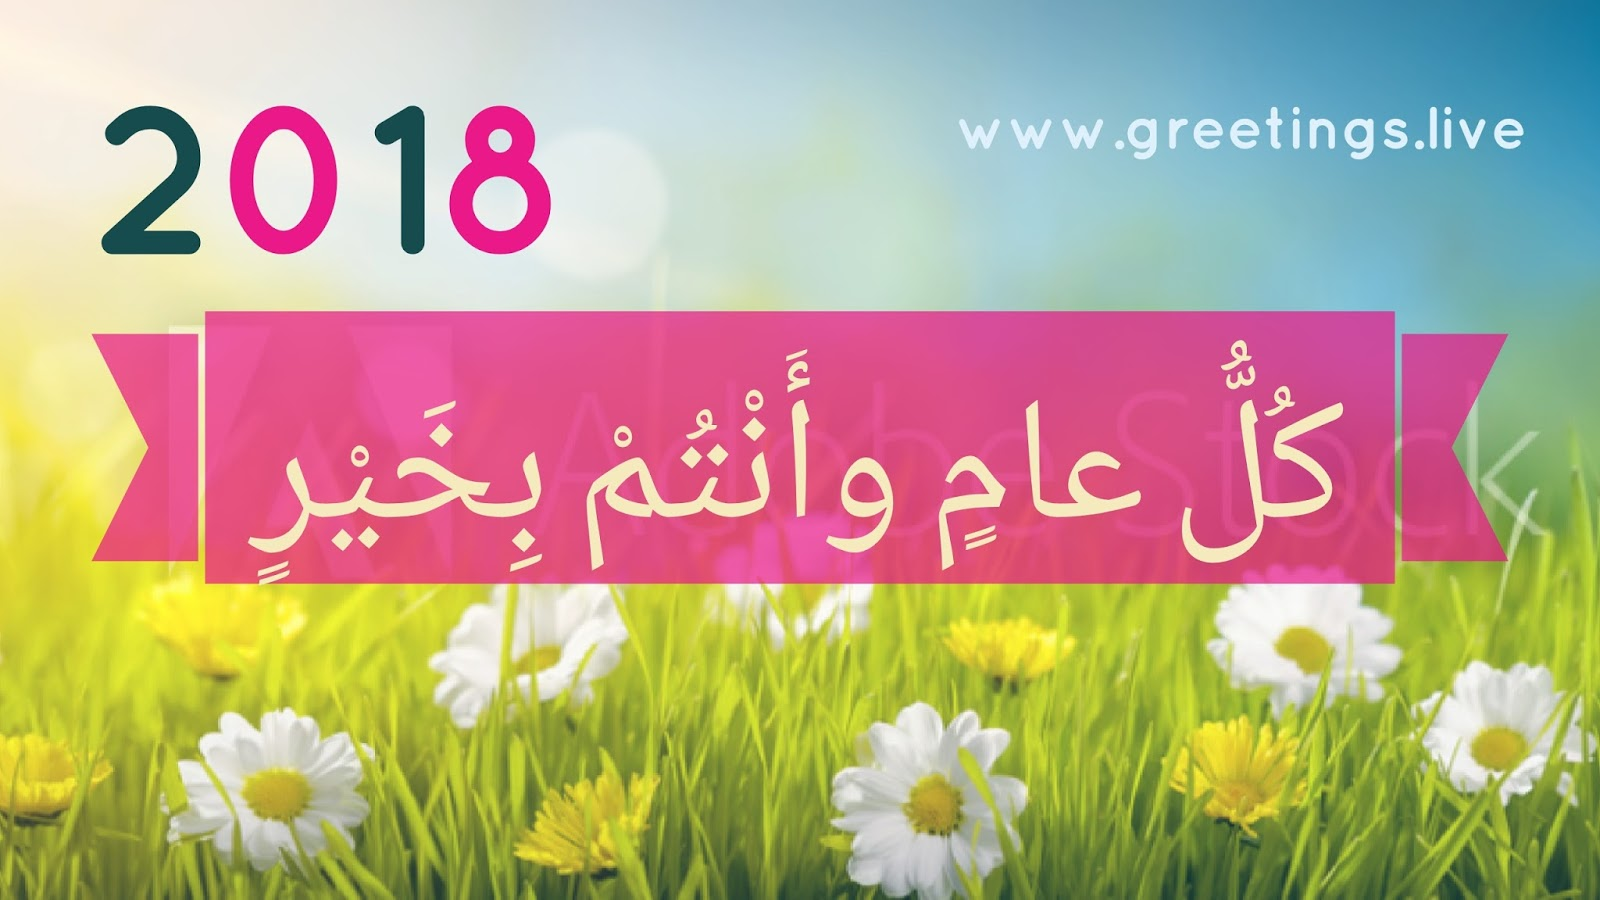 Greetingsve free hd images to express wishes all occasions arabic greetings on happy new year 2018 m4hsunfo